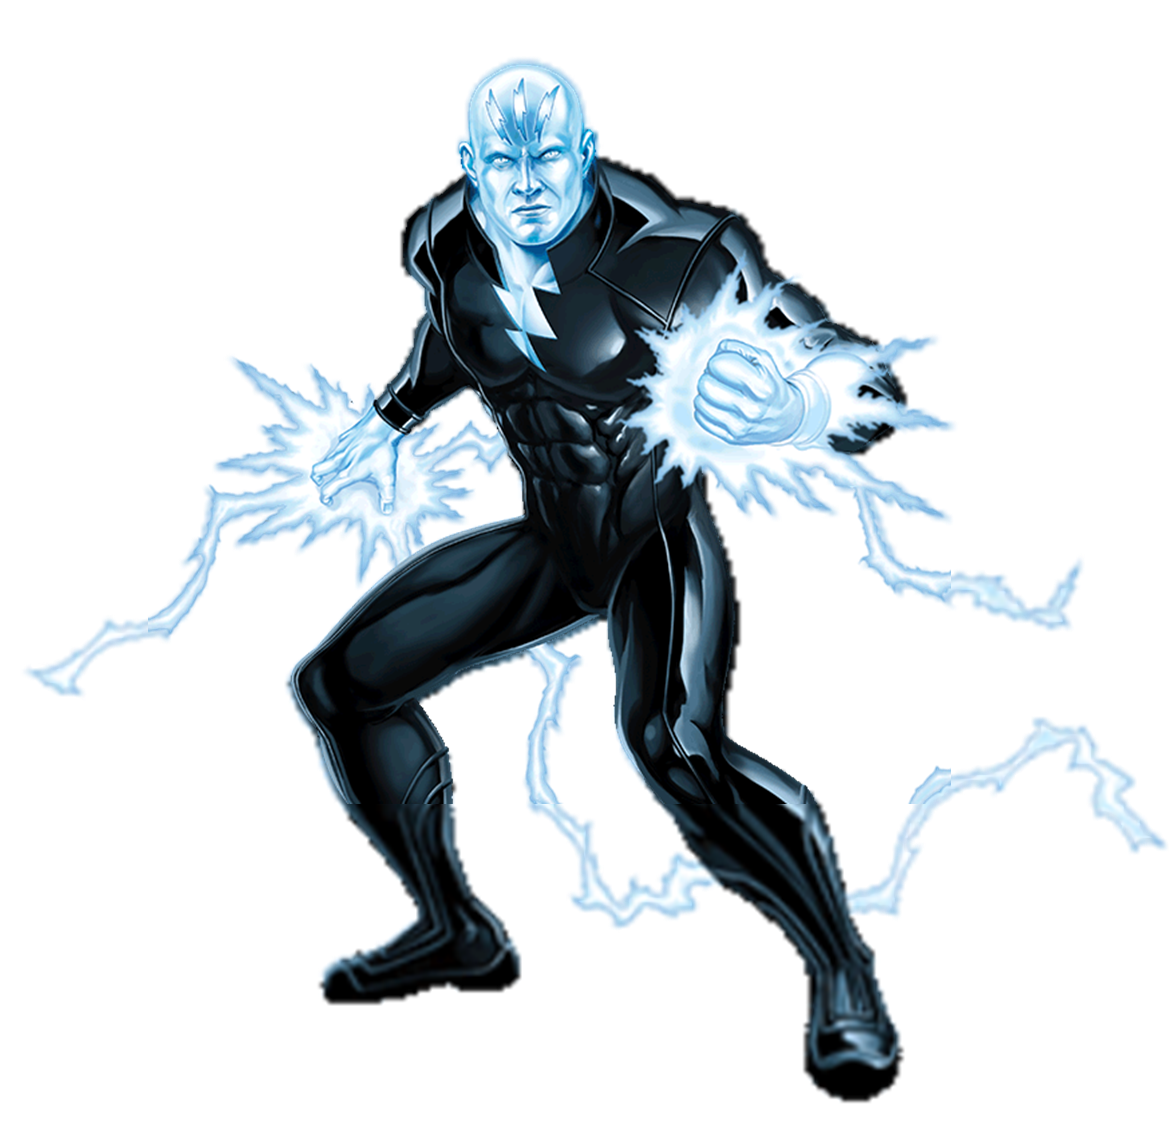 Image - Electro (Ultimate 2.0).png | Spider-Man Wiki ... The Amazing Spider Man 3 Black Cat